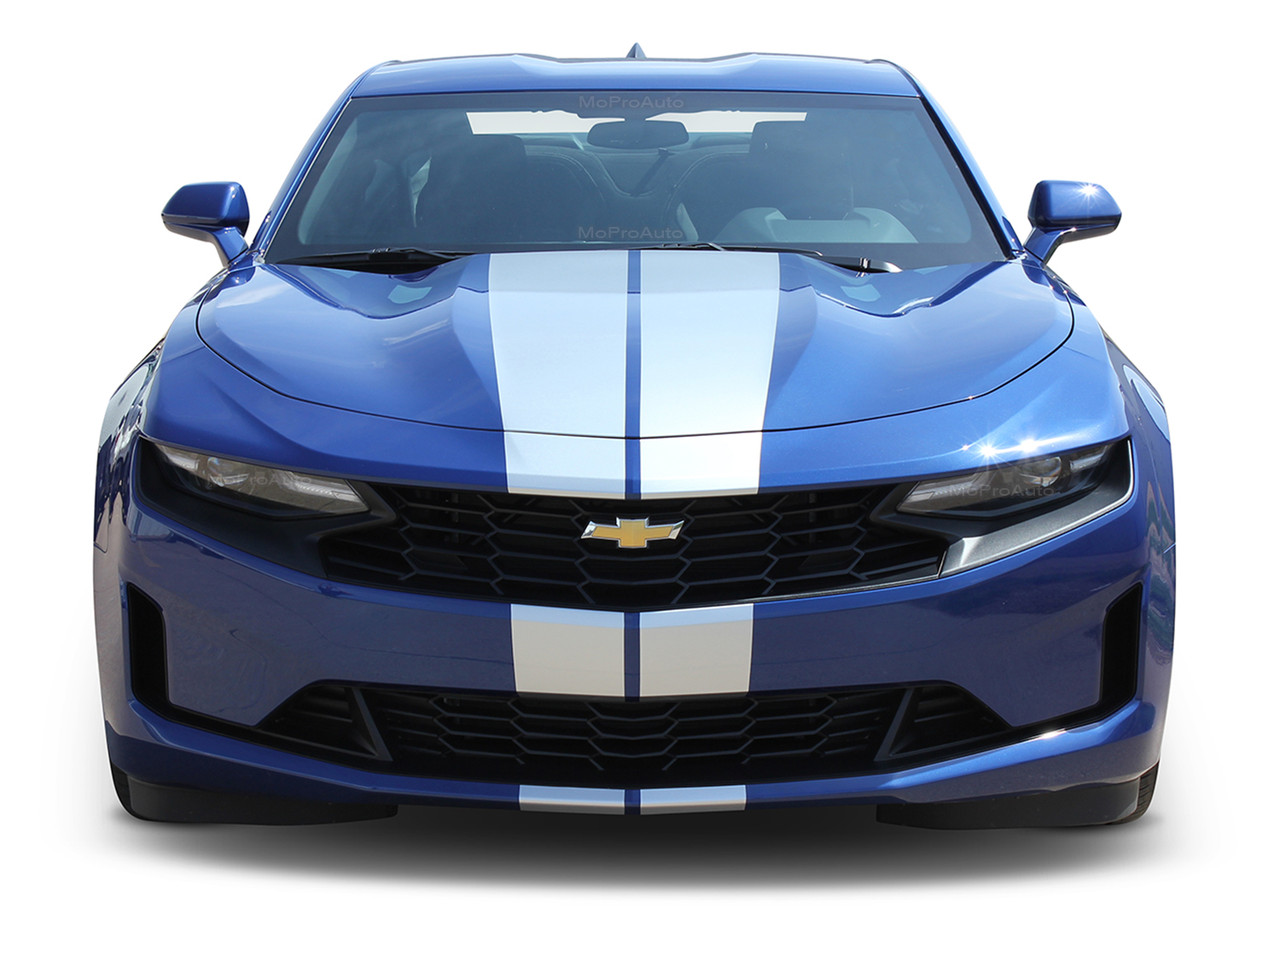 2019 camaro racing stripes turbo rally 19 chevy camaro hood decals center rally vinyl graphics kit